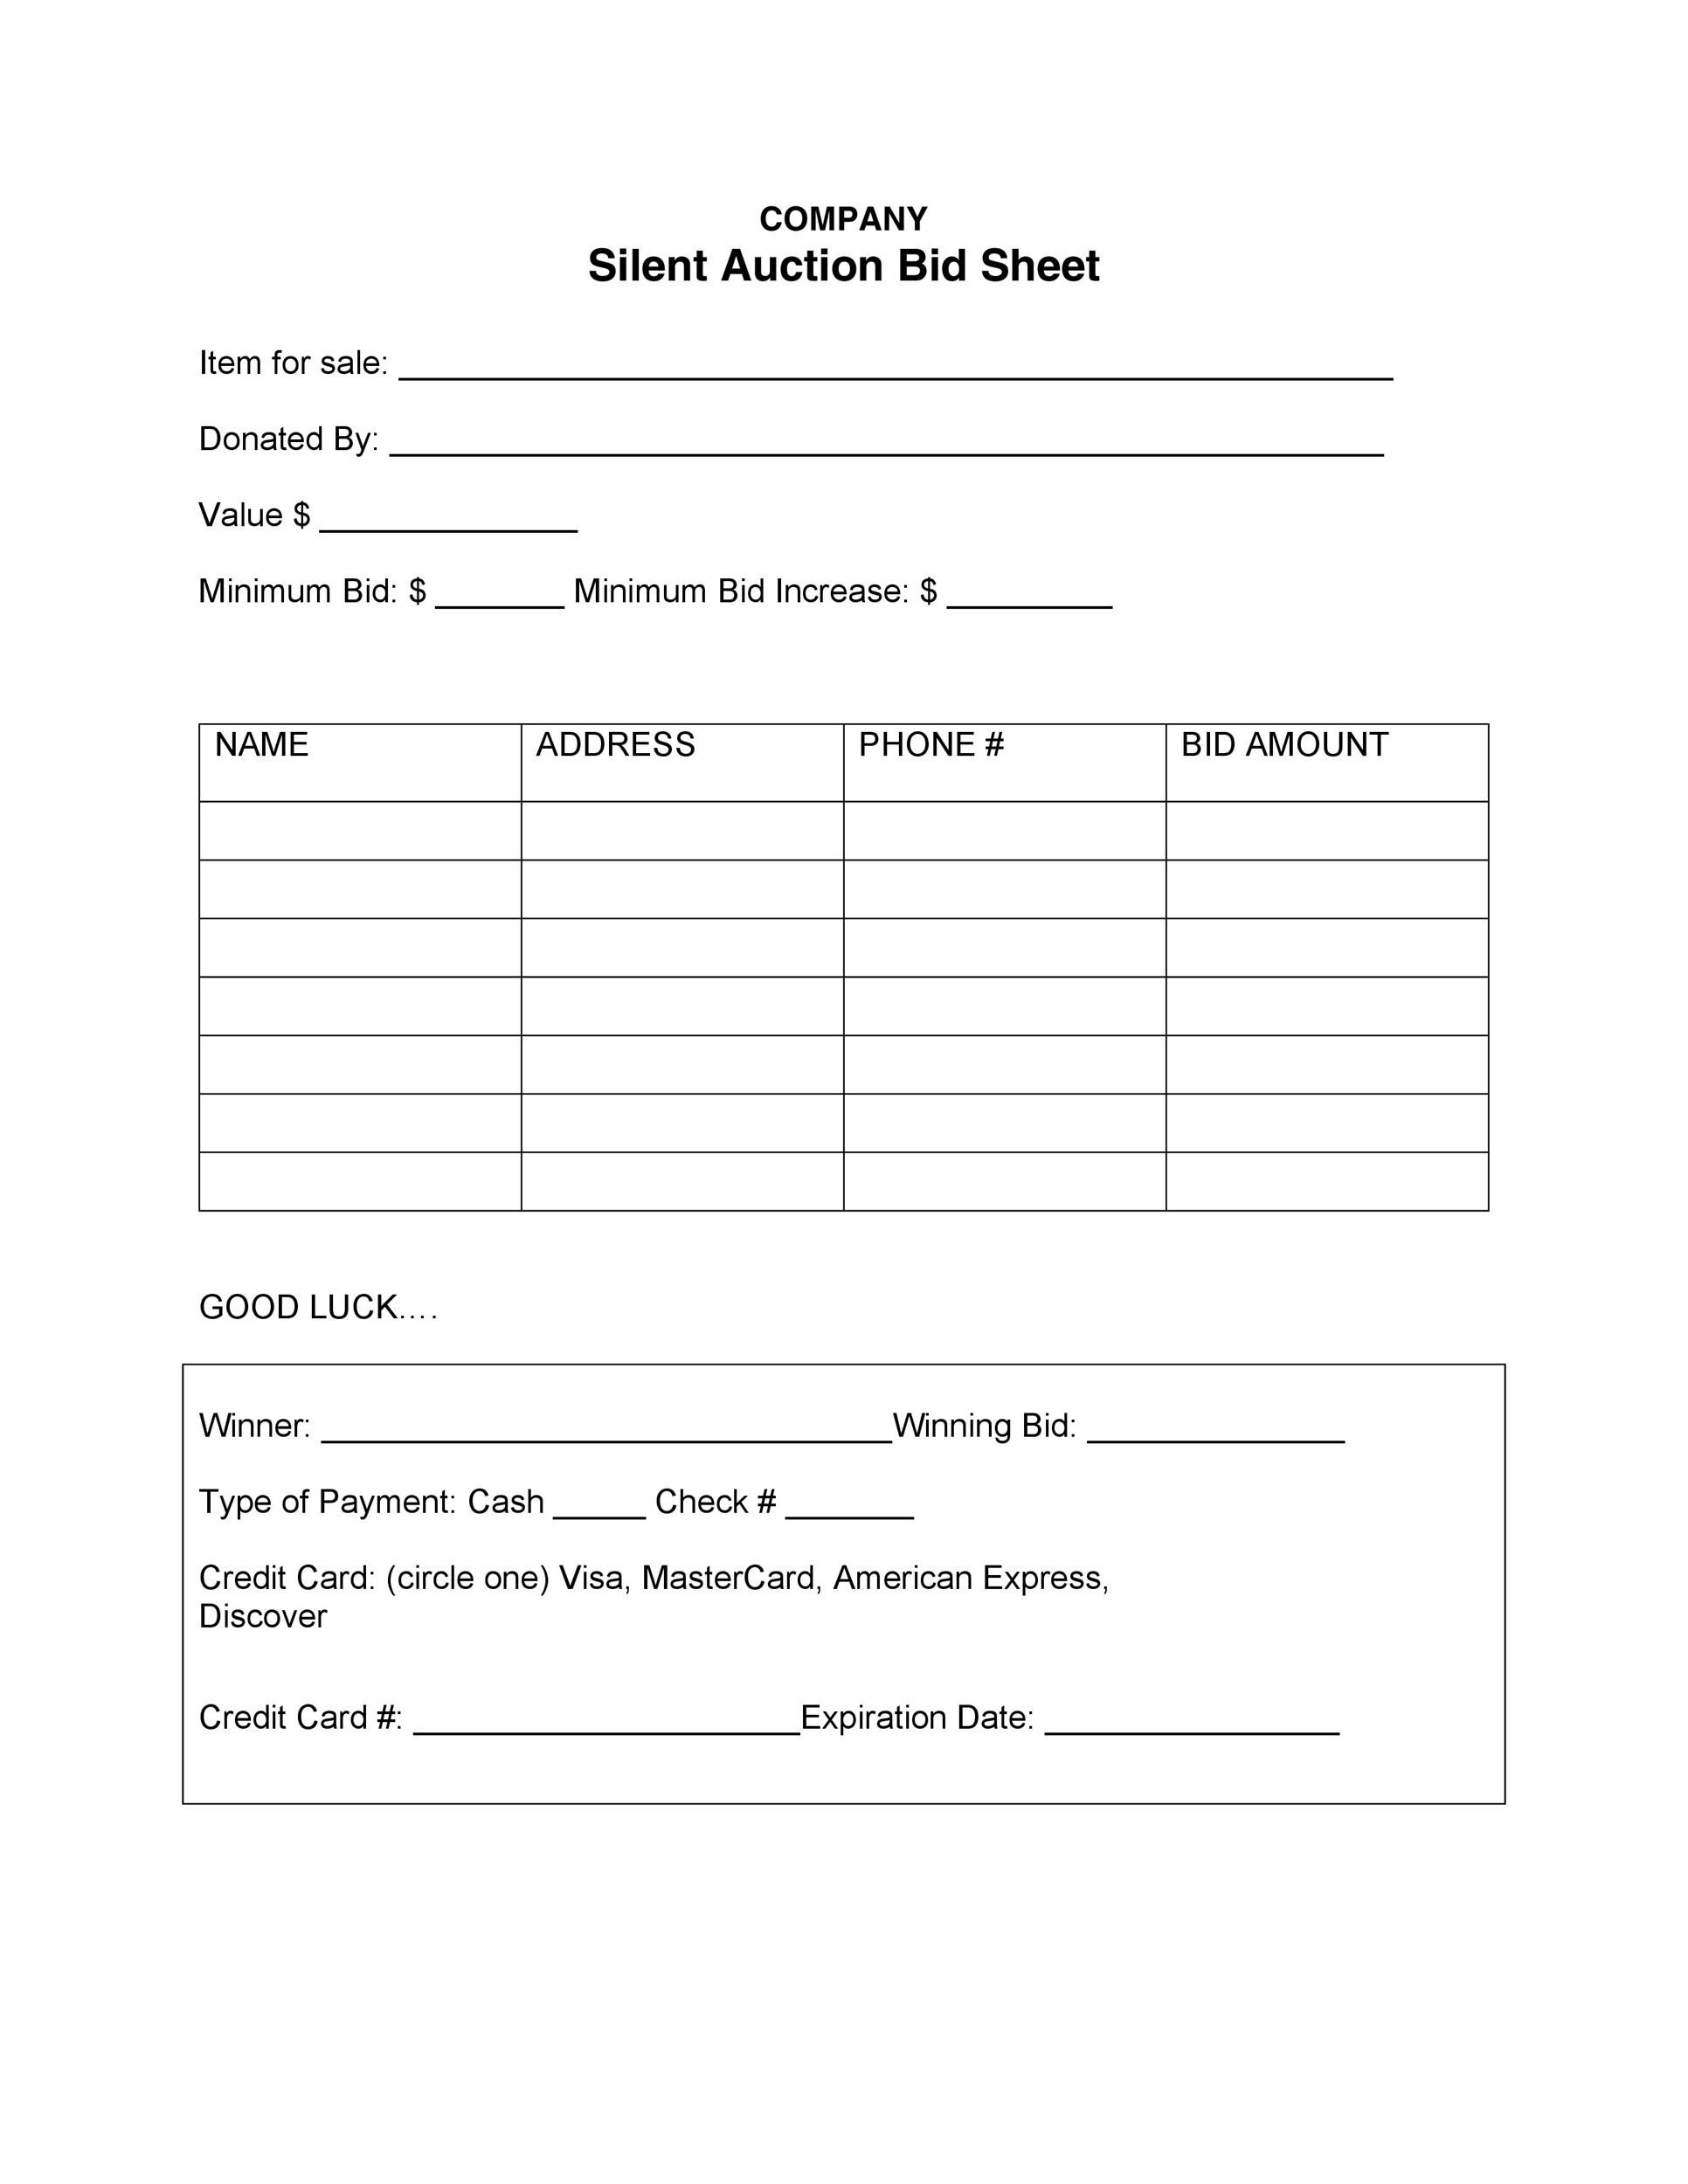 40+ Silent Auction Bid Sheet Templates Word, Excel ᐅ Template Lab